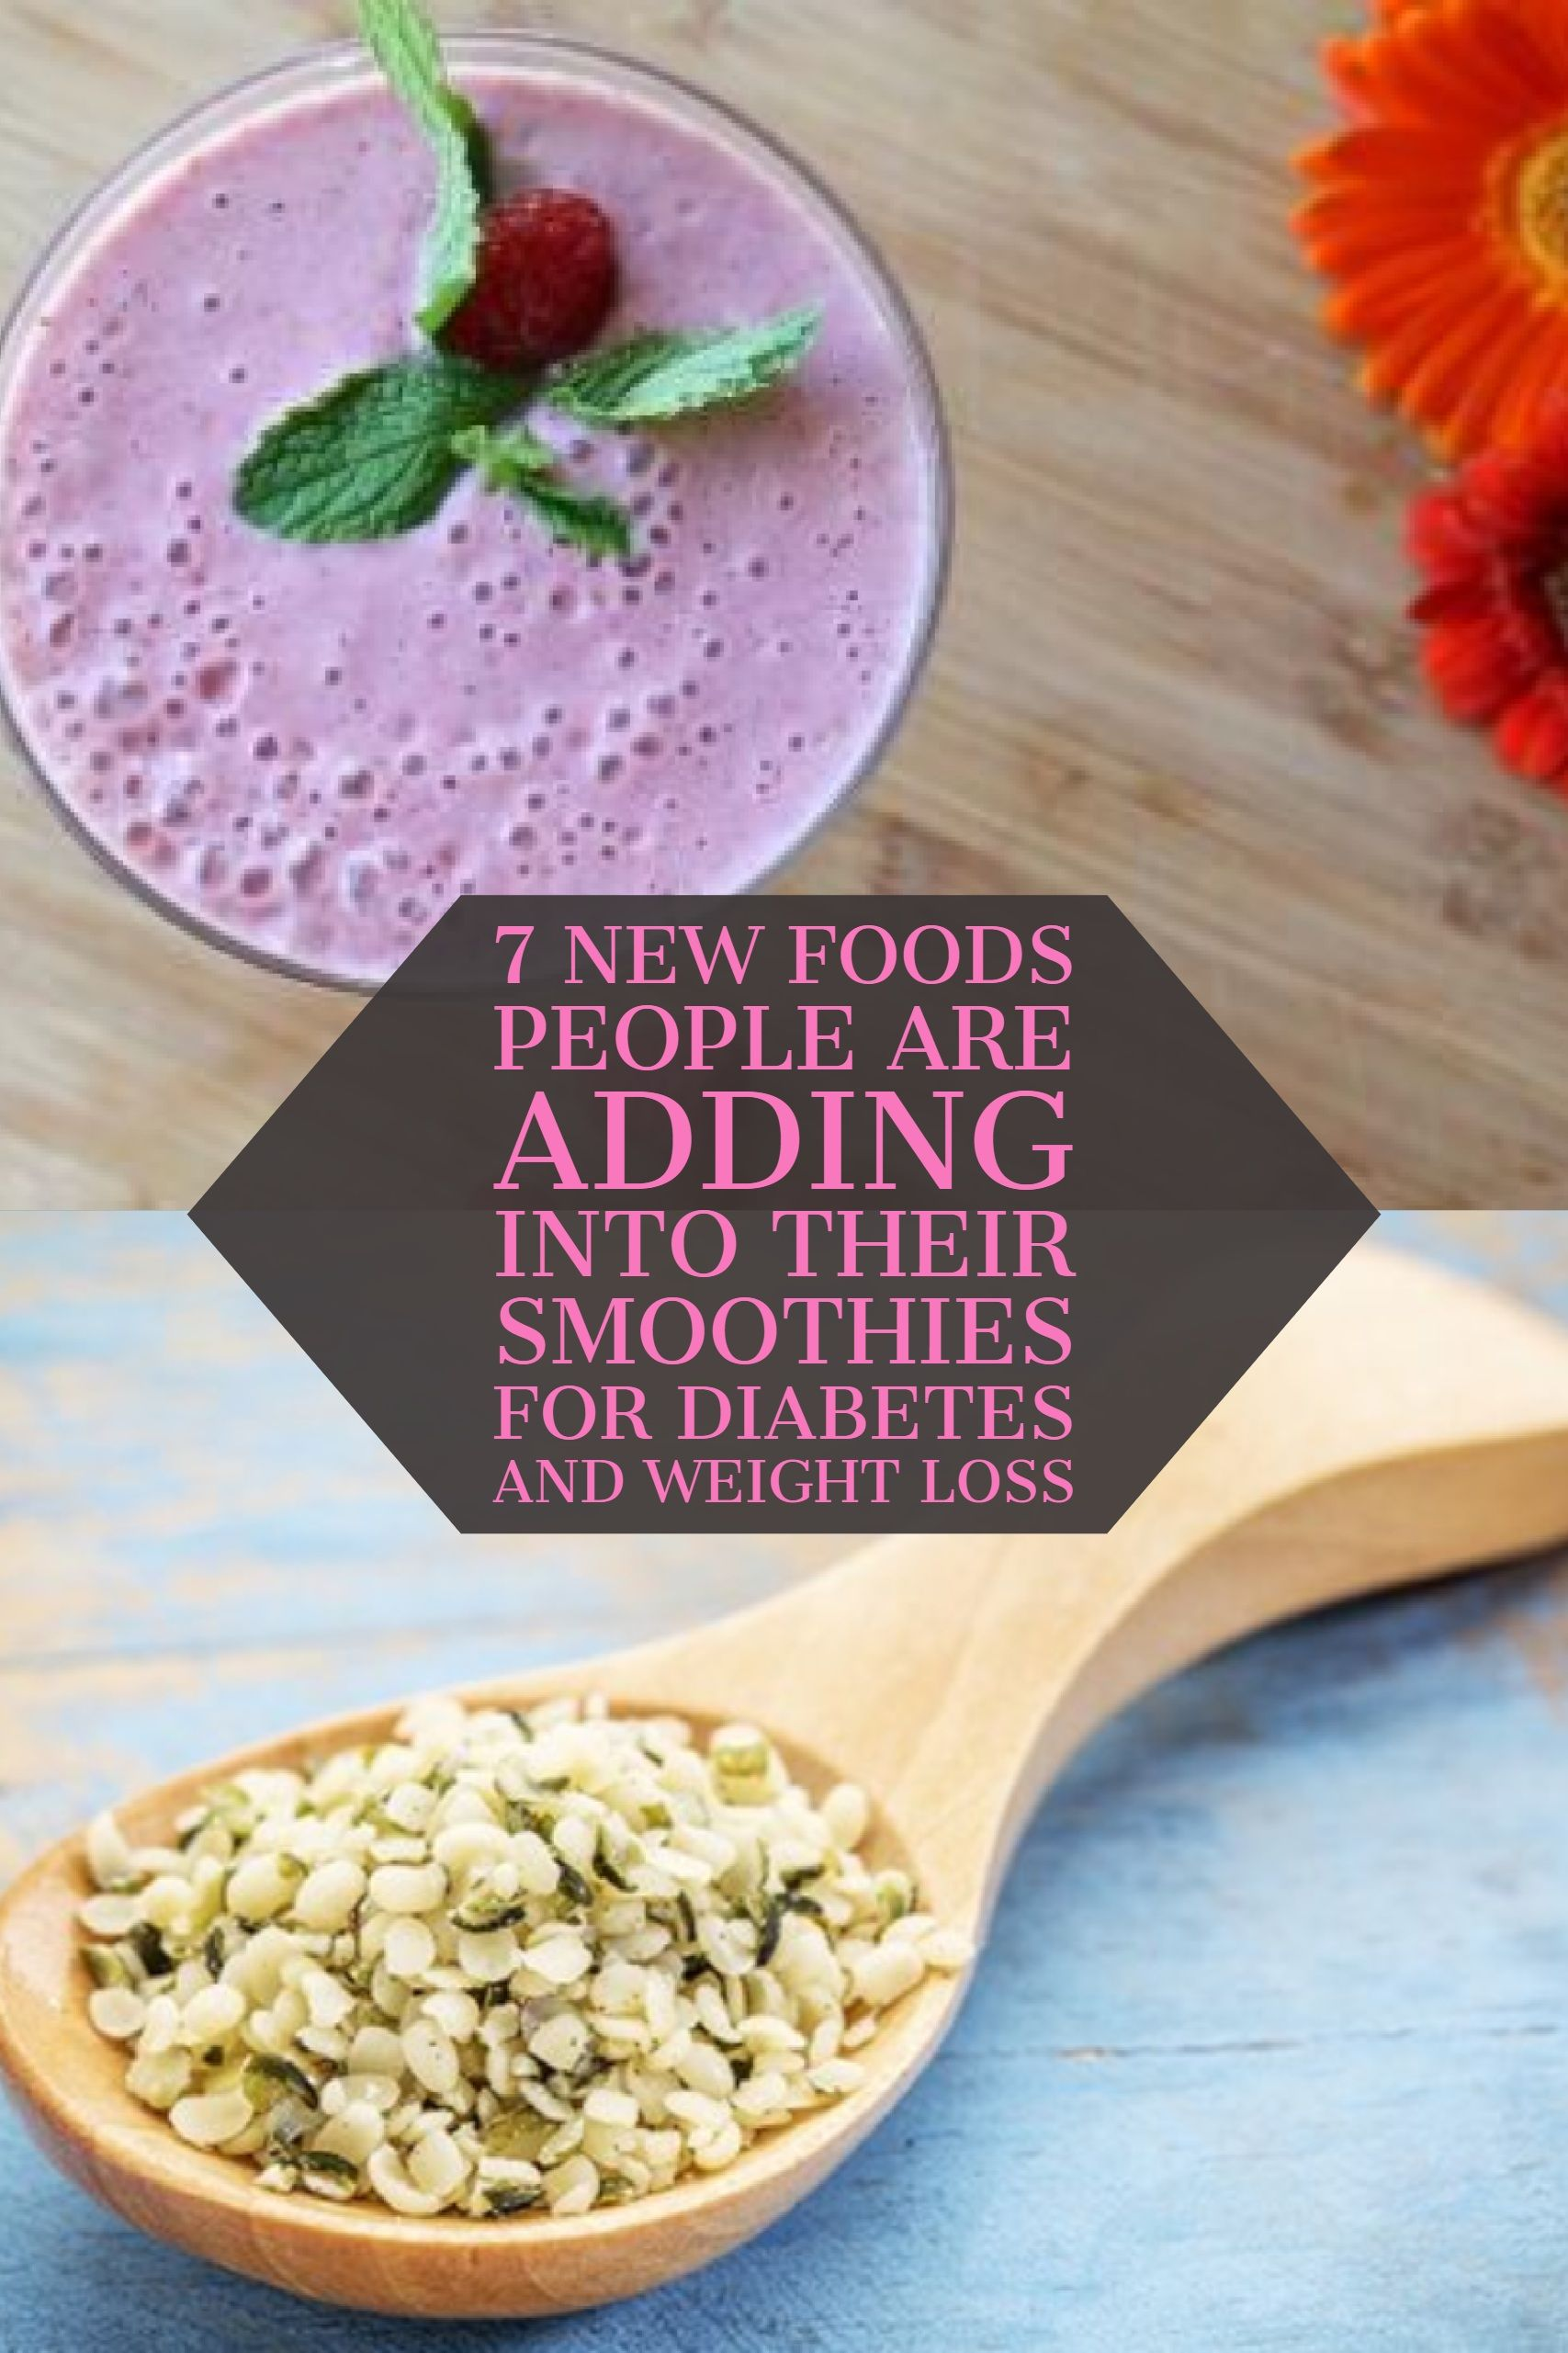 7 Creative Smoothie Ingredients That Are Also Diabetes Friendly